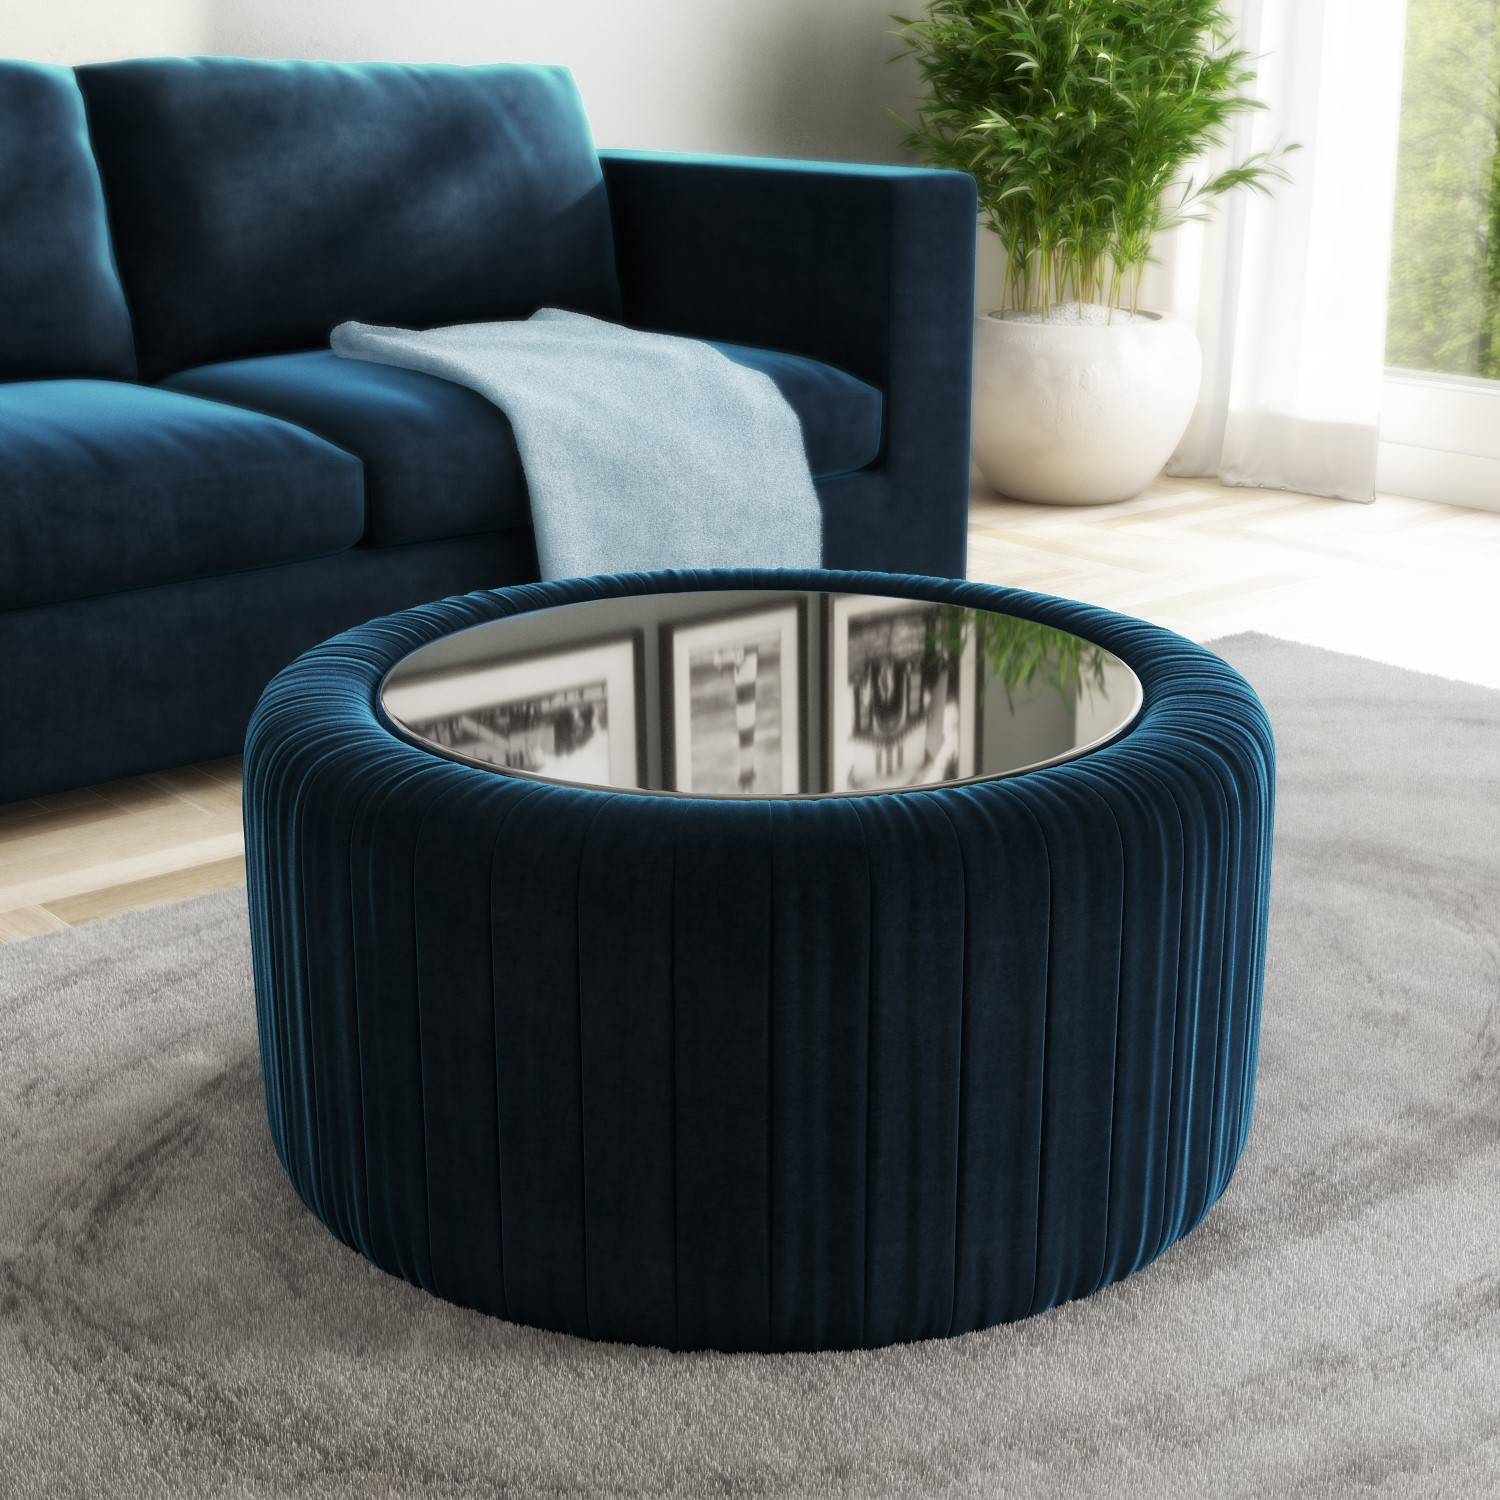 Navy Blue Velvet Ottoman Storage Pouffe With Glass Top Coffee Table Clio Furniture123